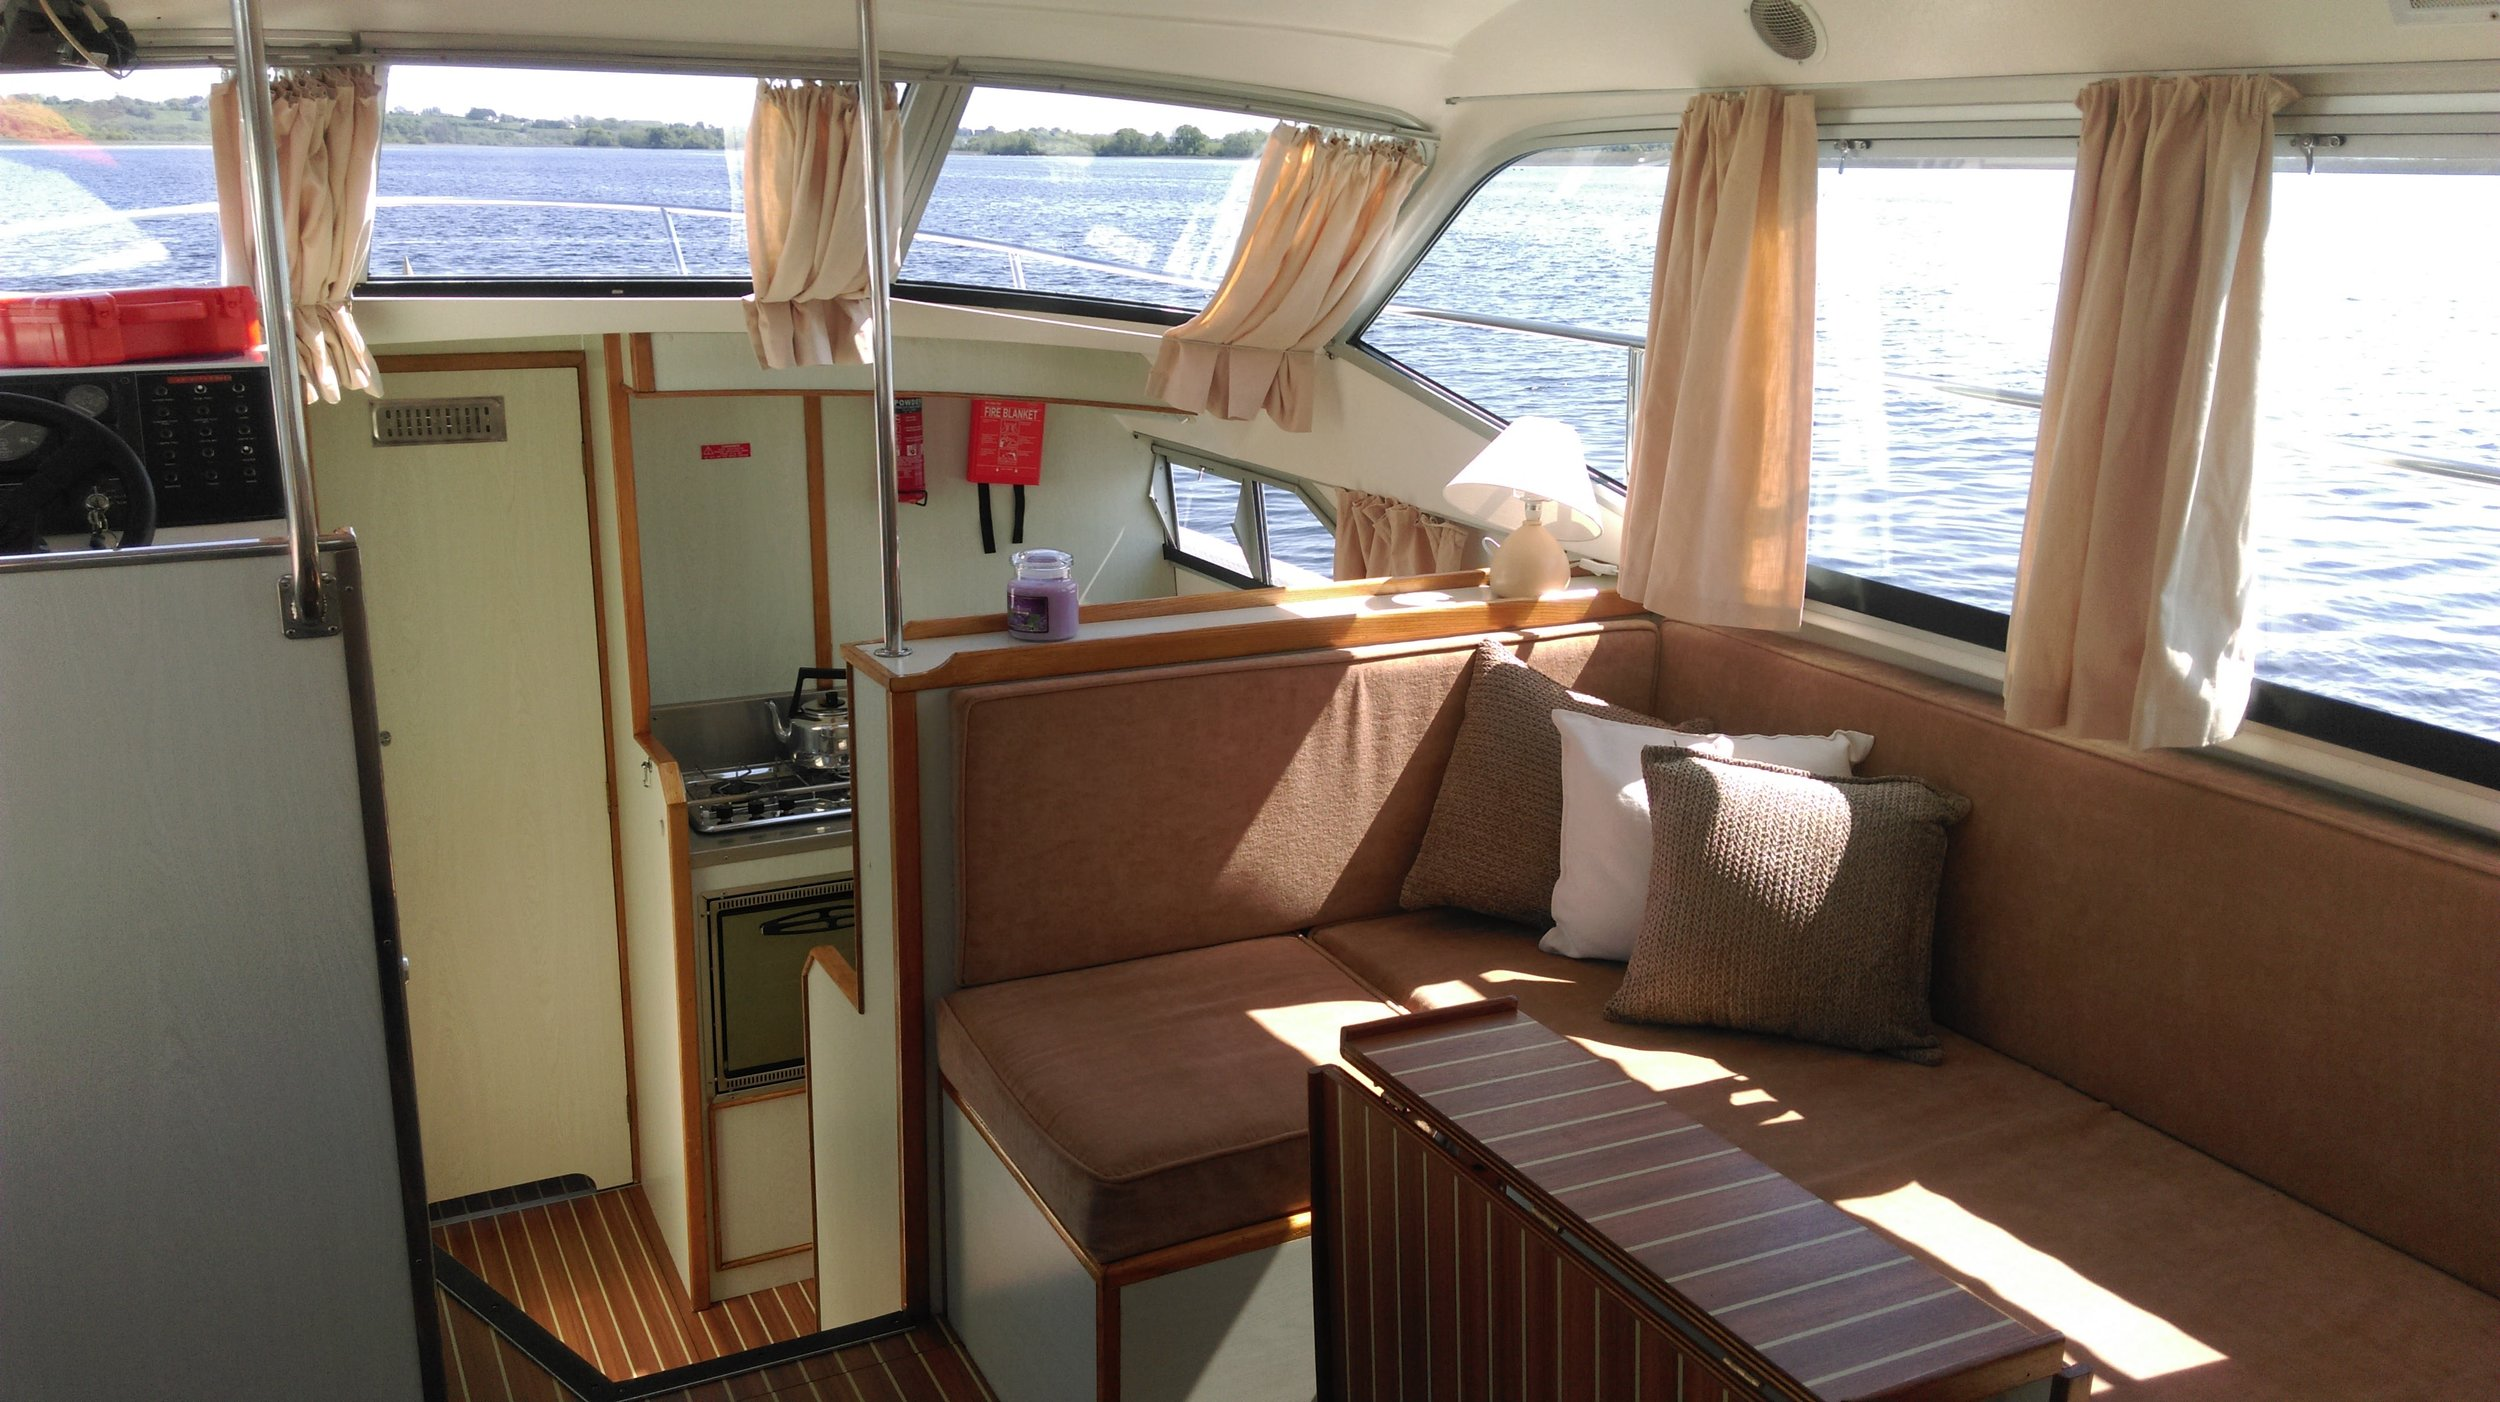 Inside our hire boat on the River Shannon. boating in Ireland.